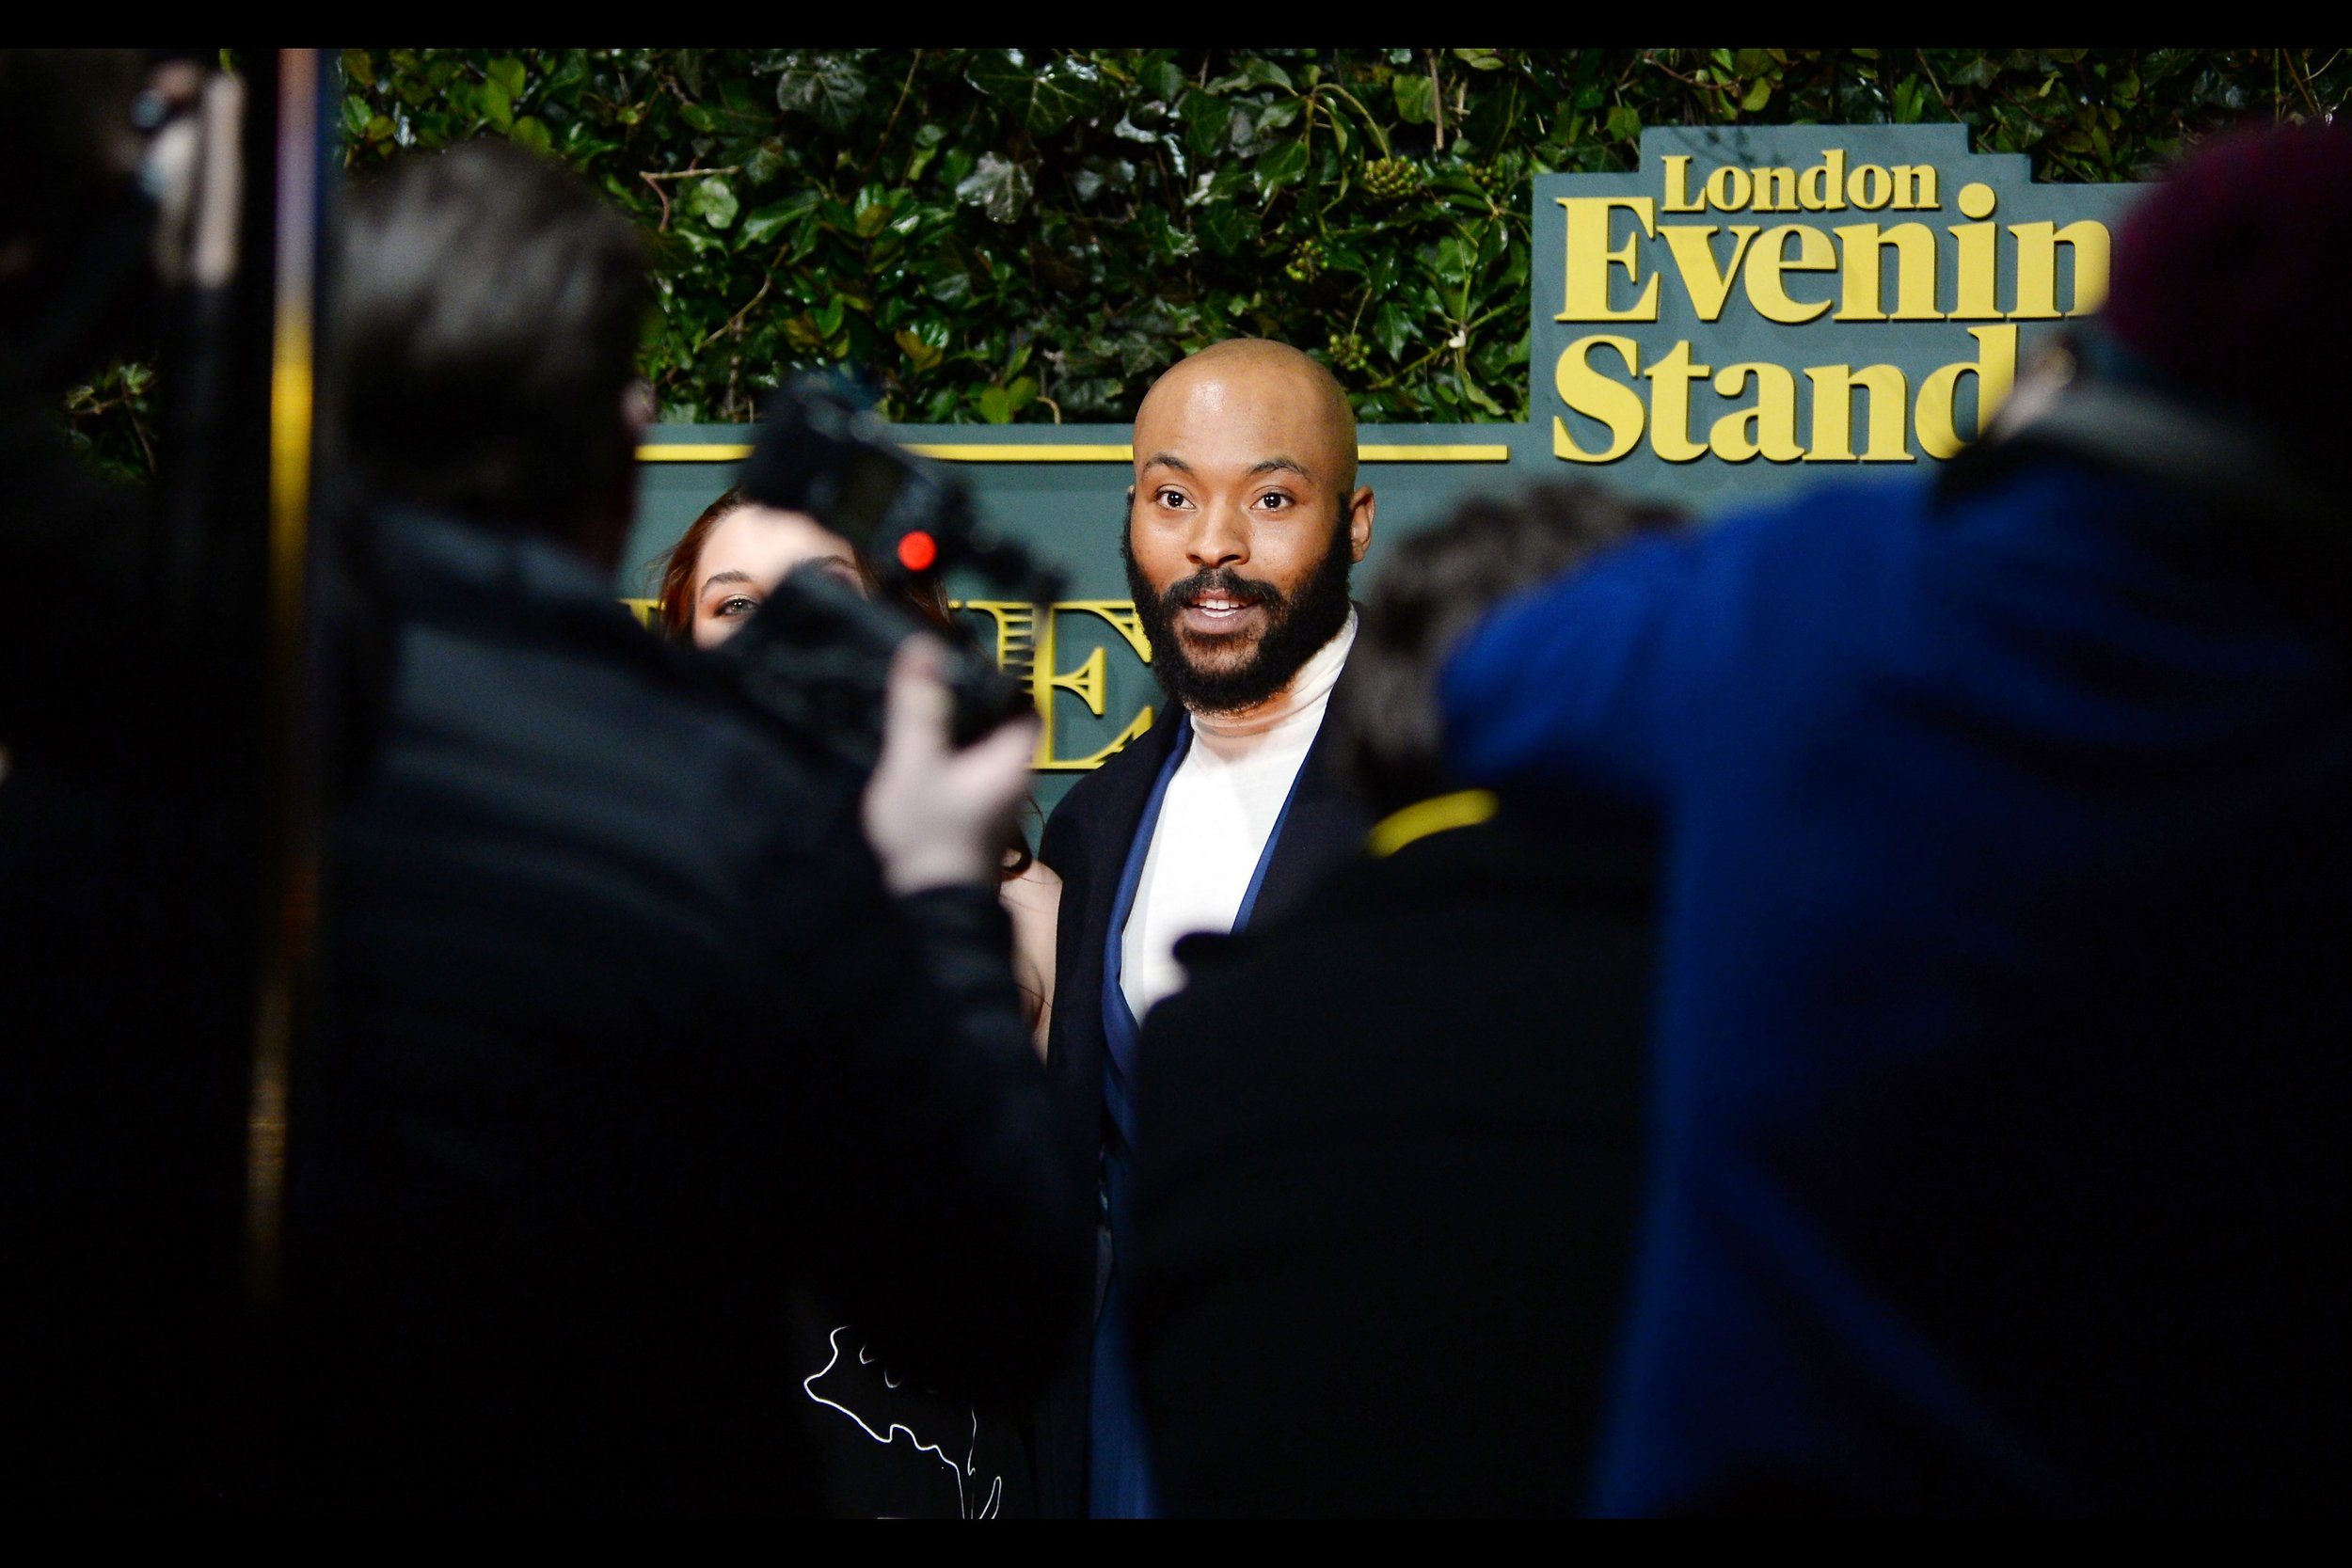 """I don't know of Arinze Kene's association with theatre (which is not an accusation, merely an admission of my lack of knowledge), but I do know that he was in and at   the premiere of the movie """"The Pass""""   back in 2016."""